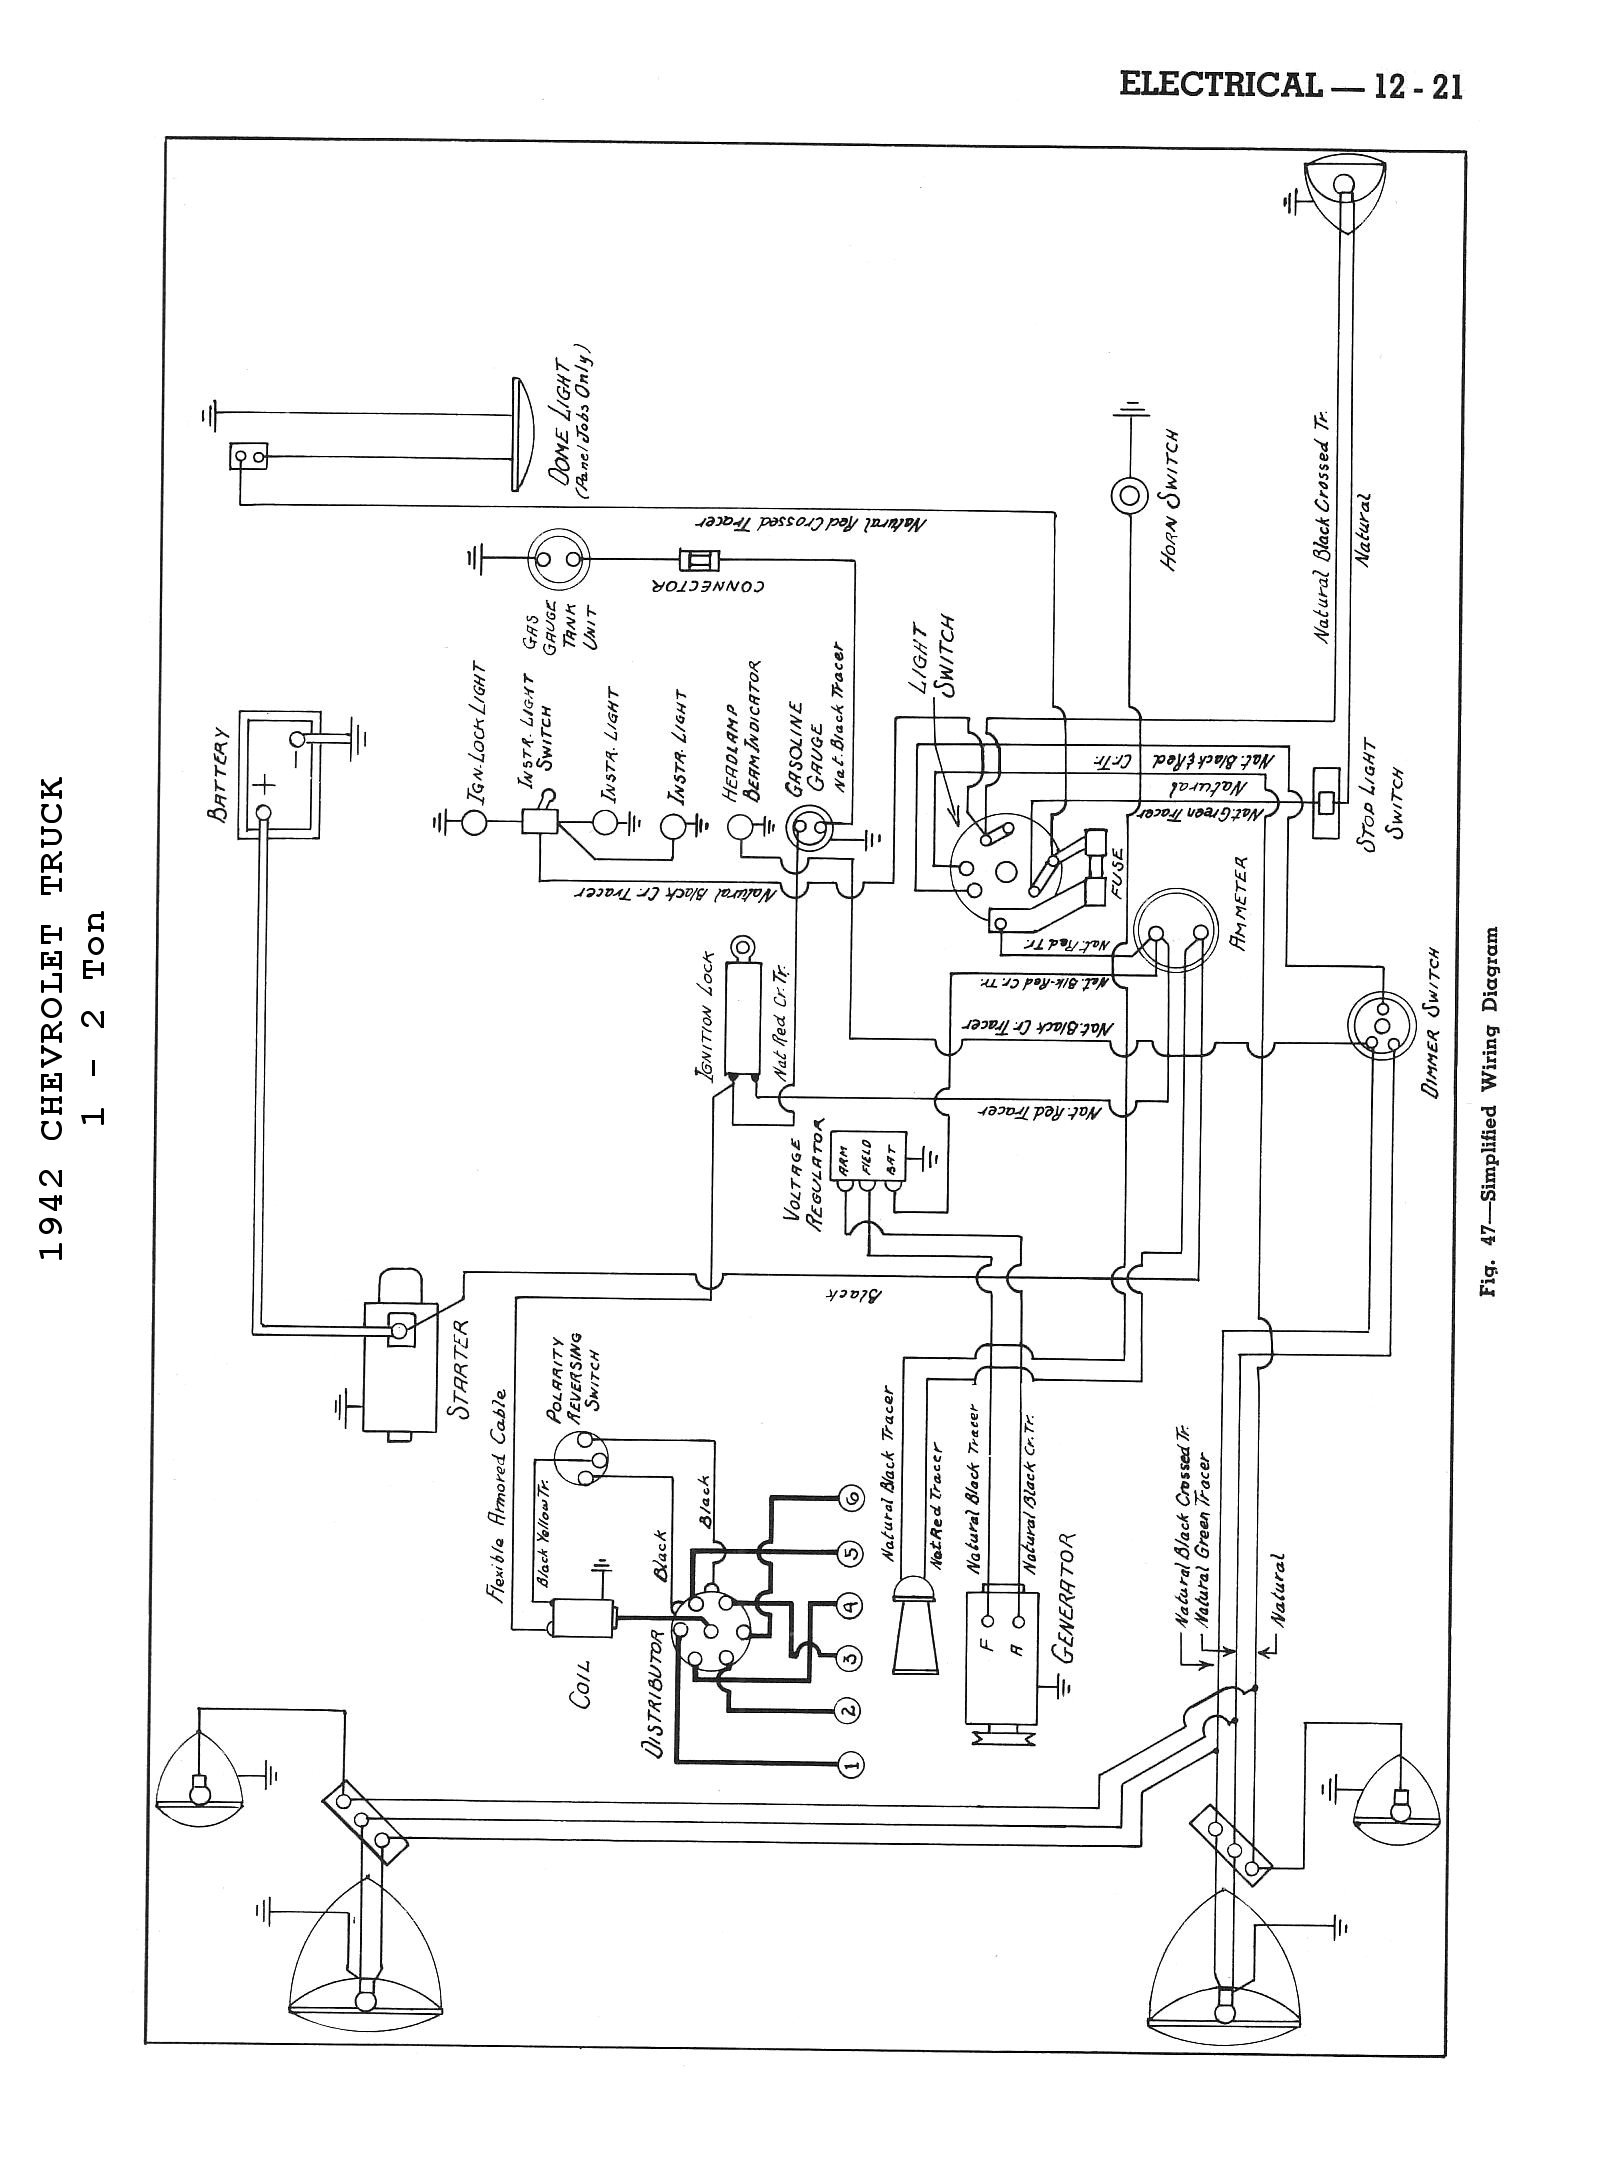 42cm4x2t1221 chevy wiring diagrams 1955 studebaker wiring diagram at webbmarketing.co